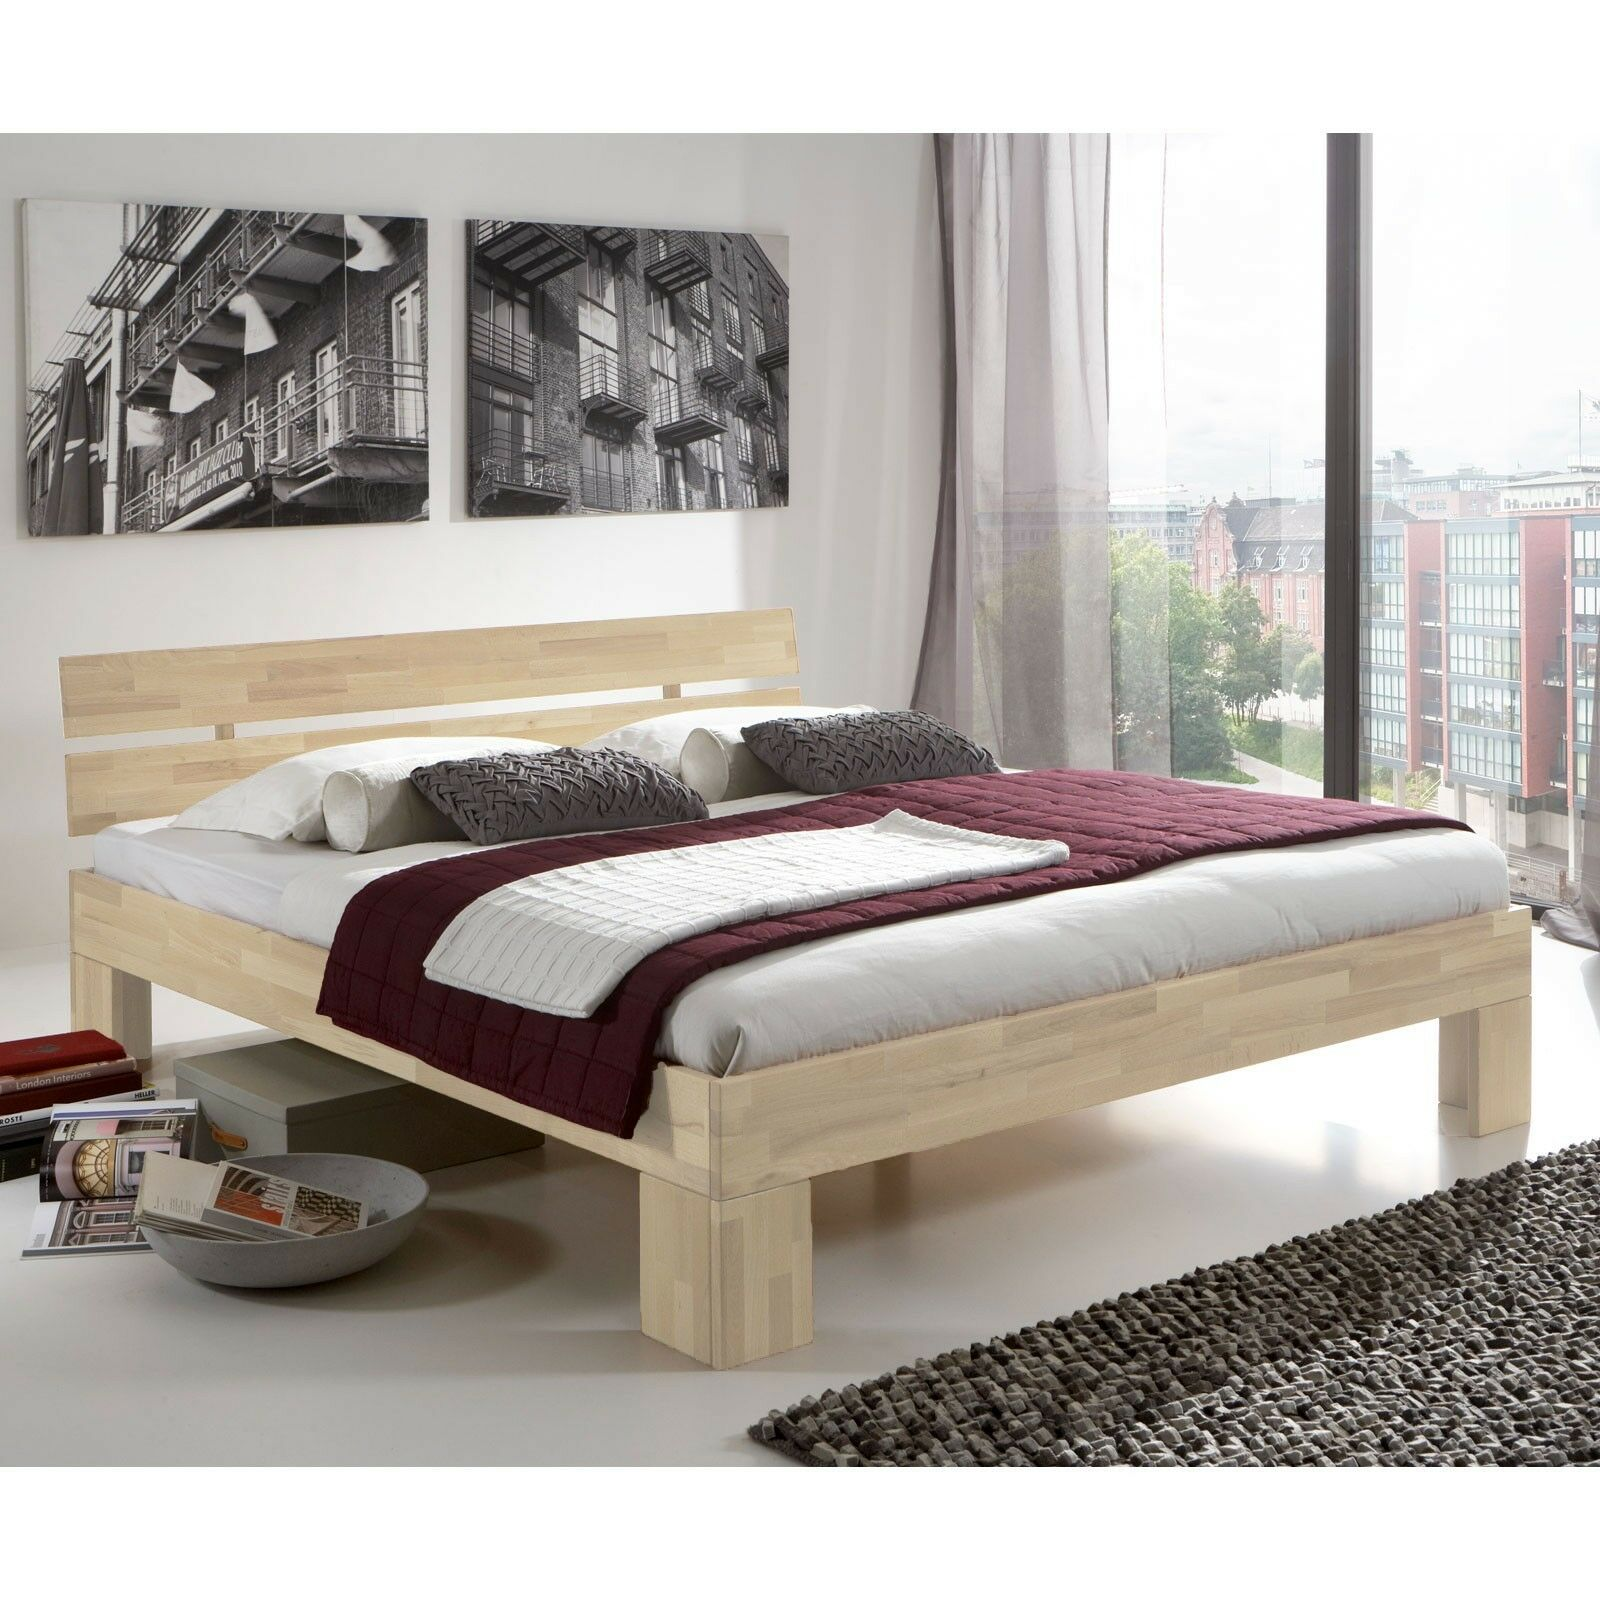 massivholzbett doppelbett holzbett futonbett kernbuche nano weiss 160x200 neu eur 409 00. Black Bedroom Furniture Sets. Home Design Ideas